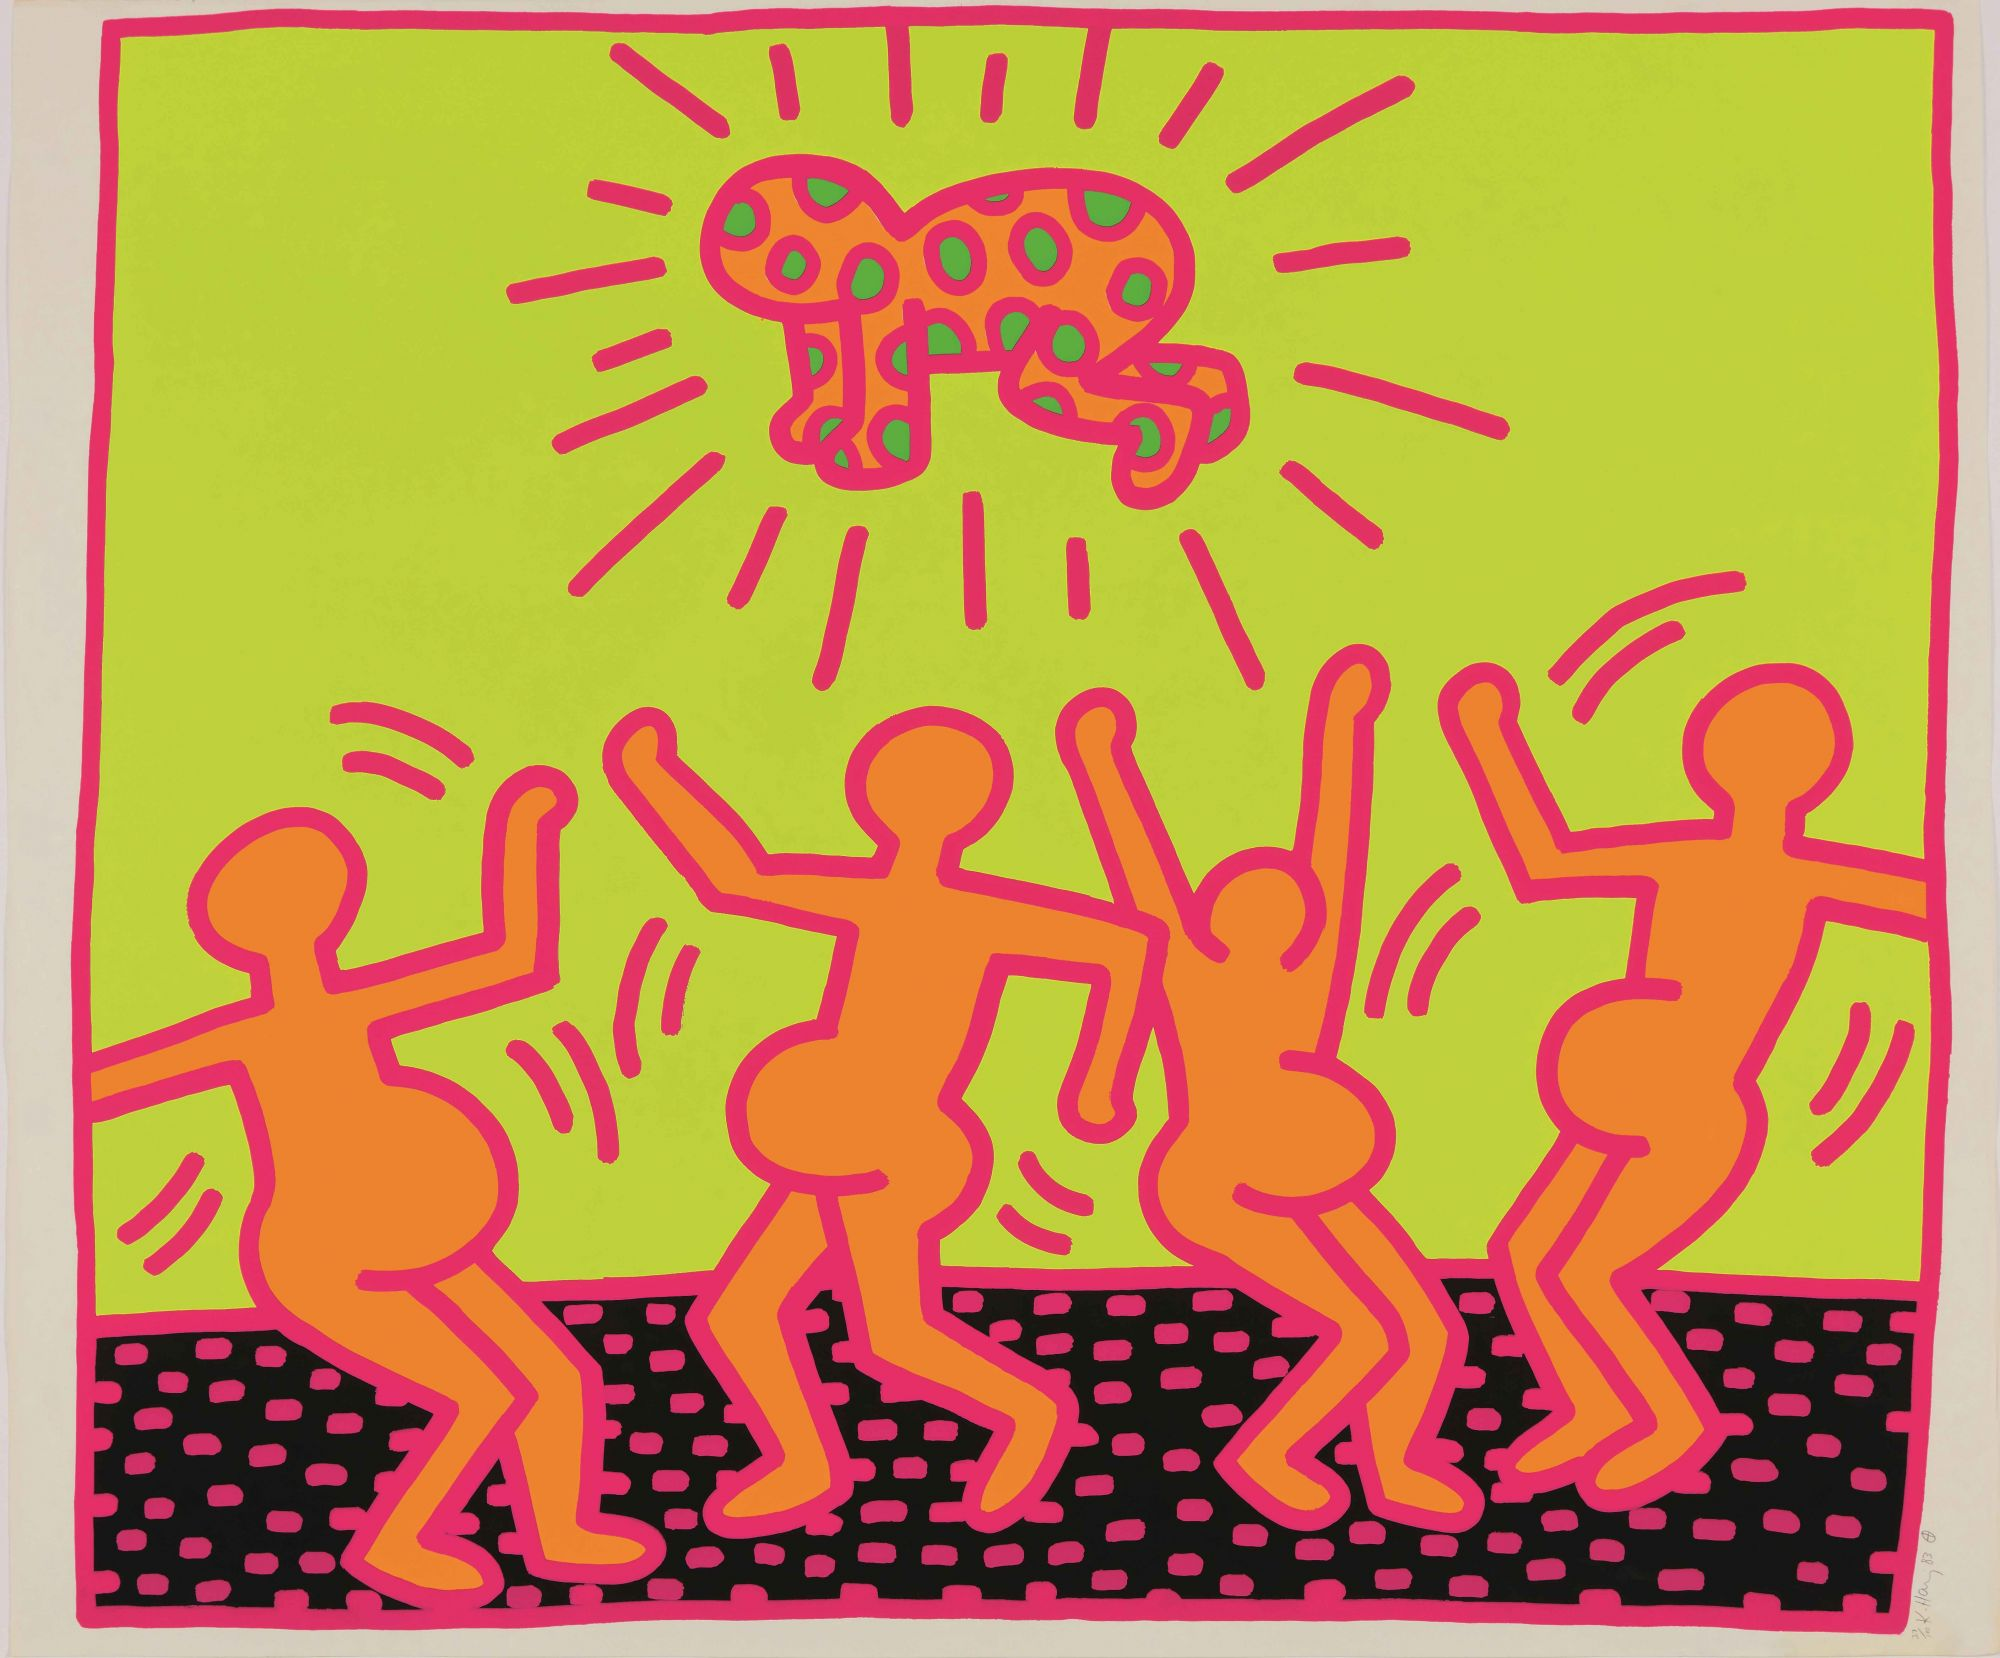 Keith Haring, a screenprint from The Fertility Suite (1983). (Photo: Courtesy of Phillips)